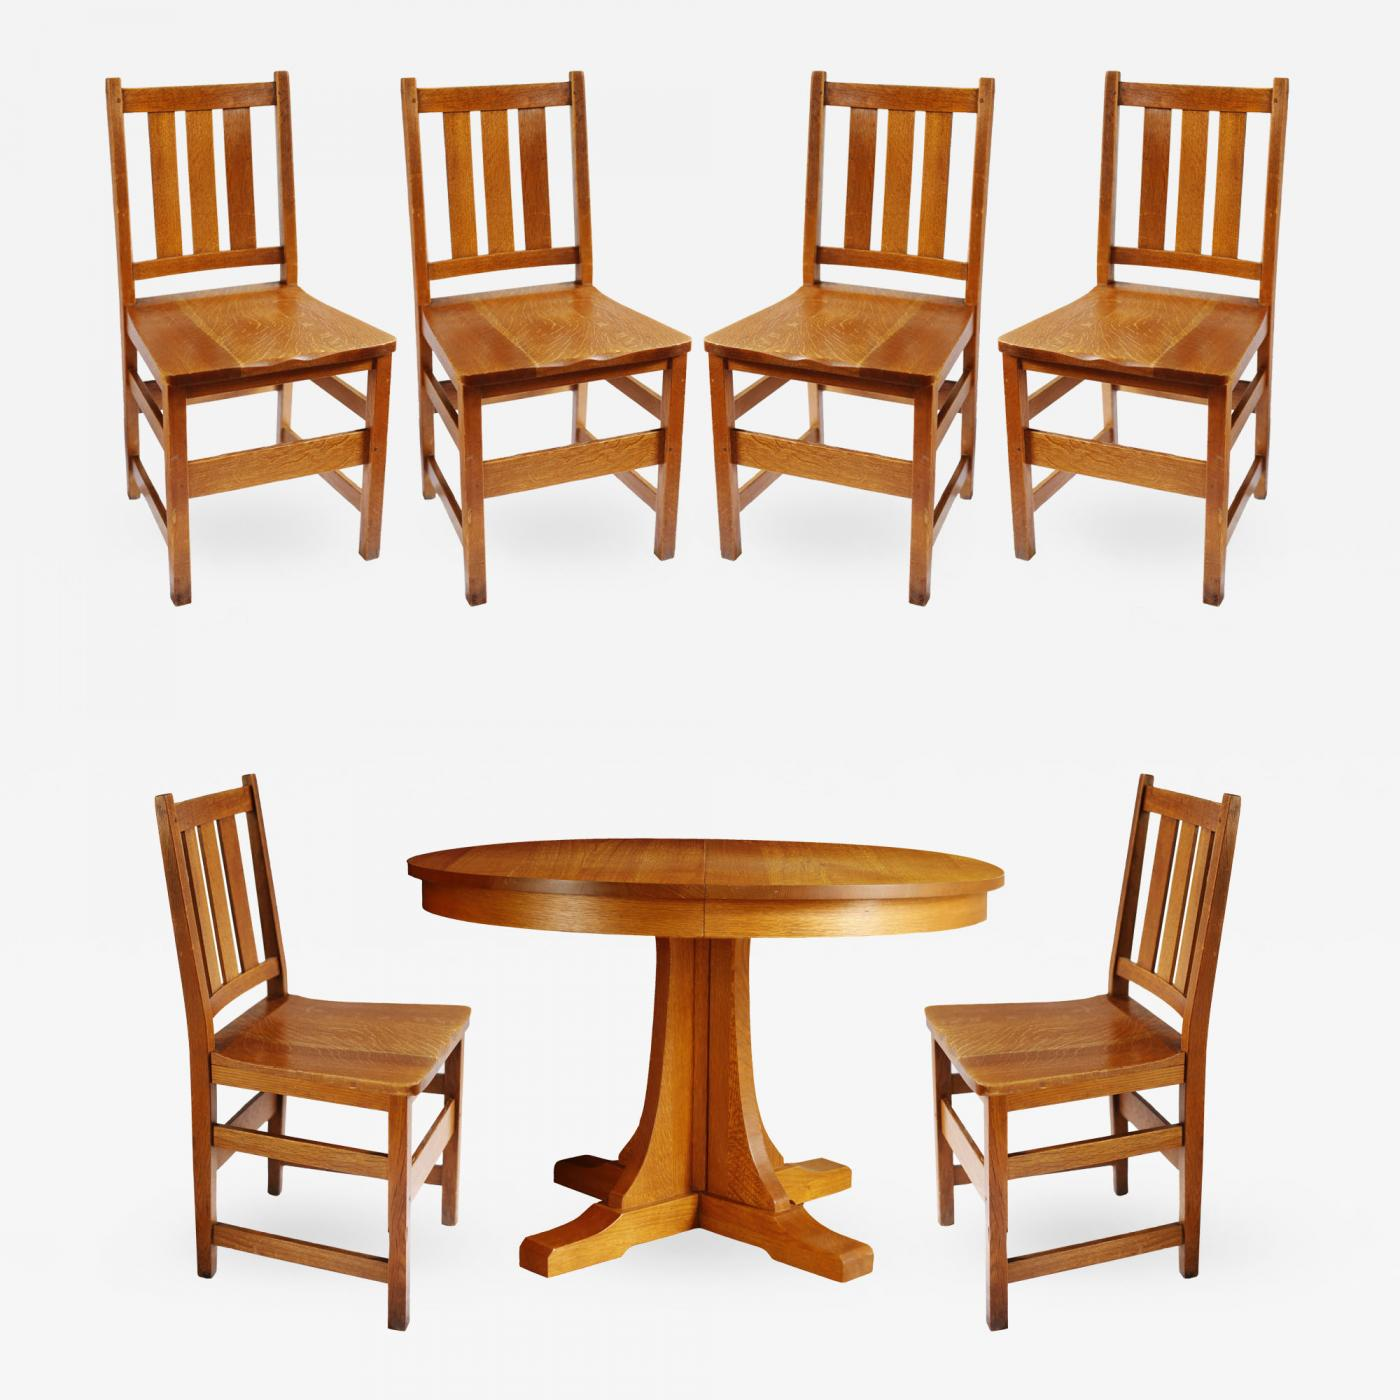 1be21157a7 Andy Warhol's Six Stickley Dining Chairs from the Factory and Extending  Table. Sale